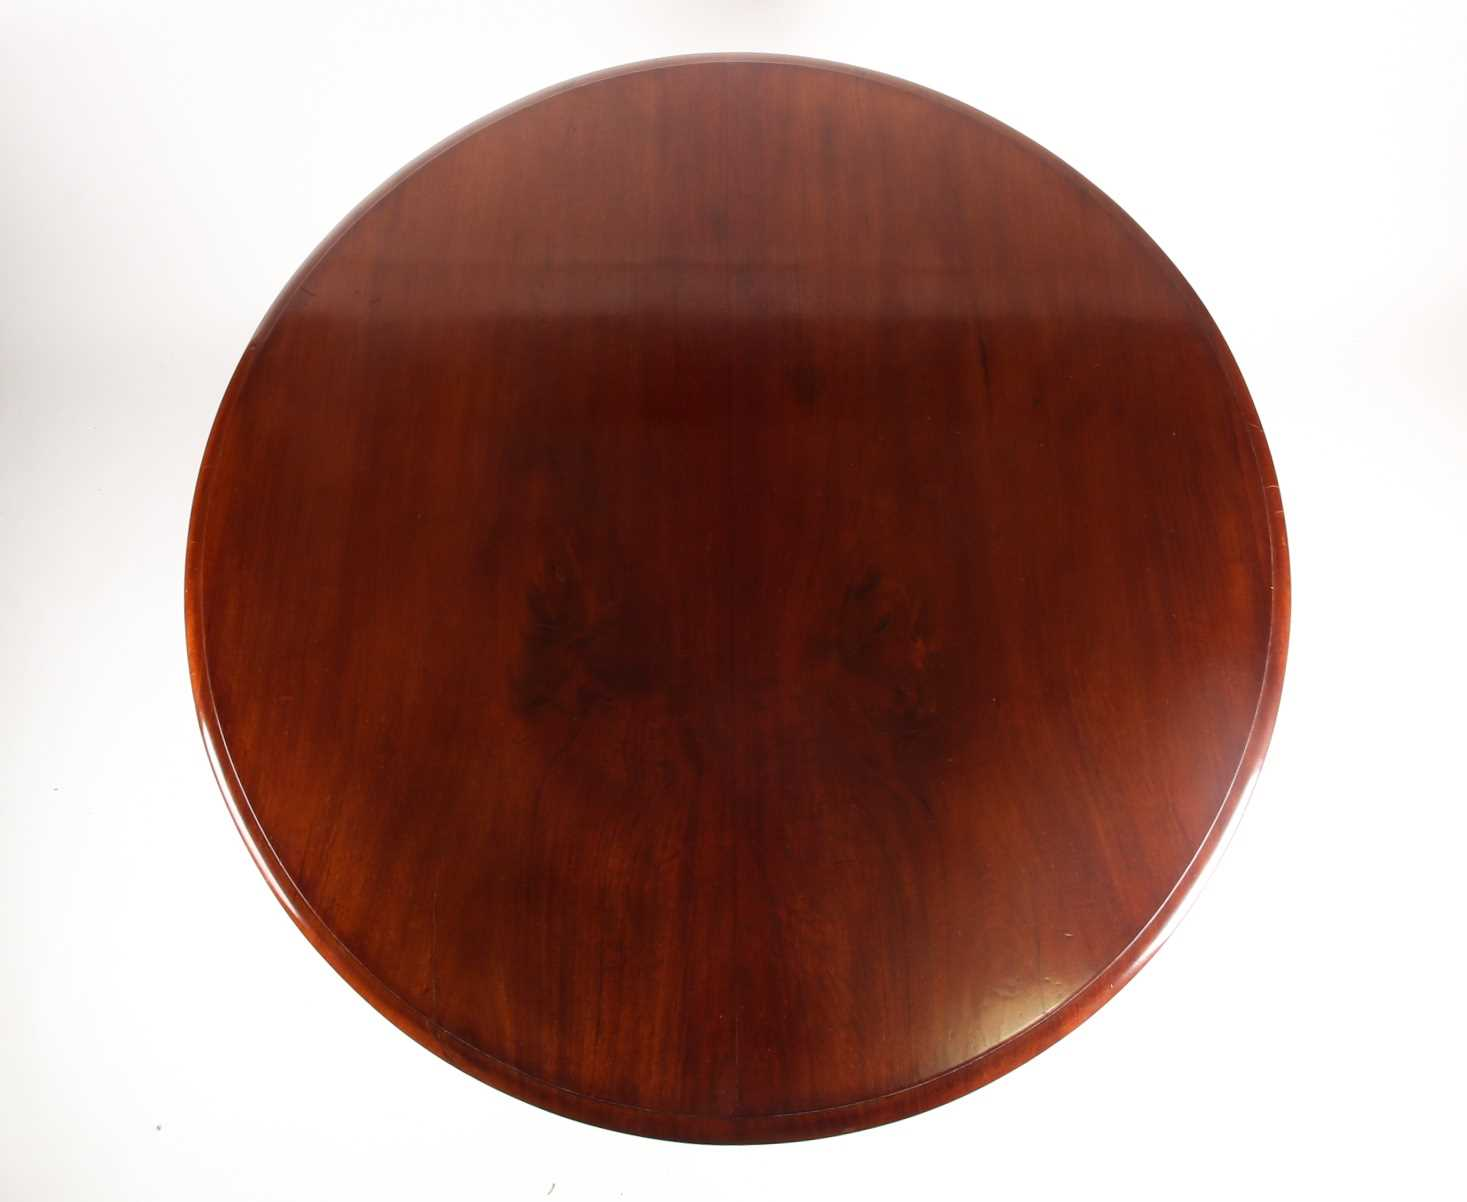 A Victorian mahogany circular flip-top breakfast table. With a carved tripod base. 120 cm diameter x - Image 6 of 6